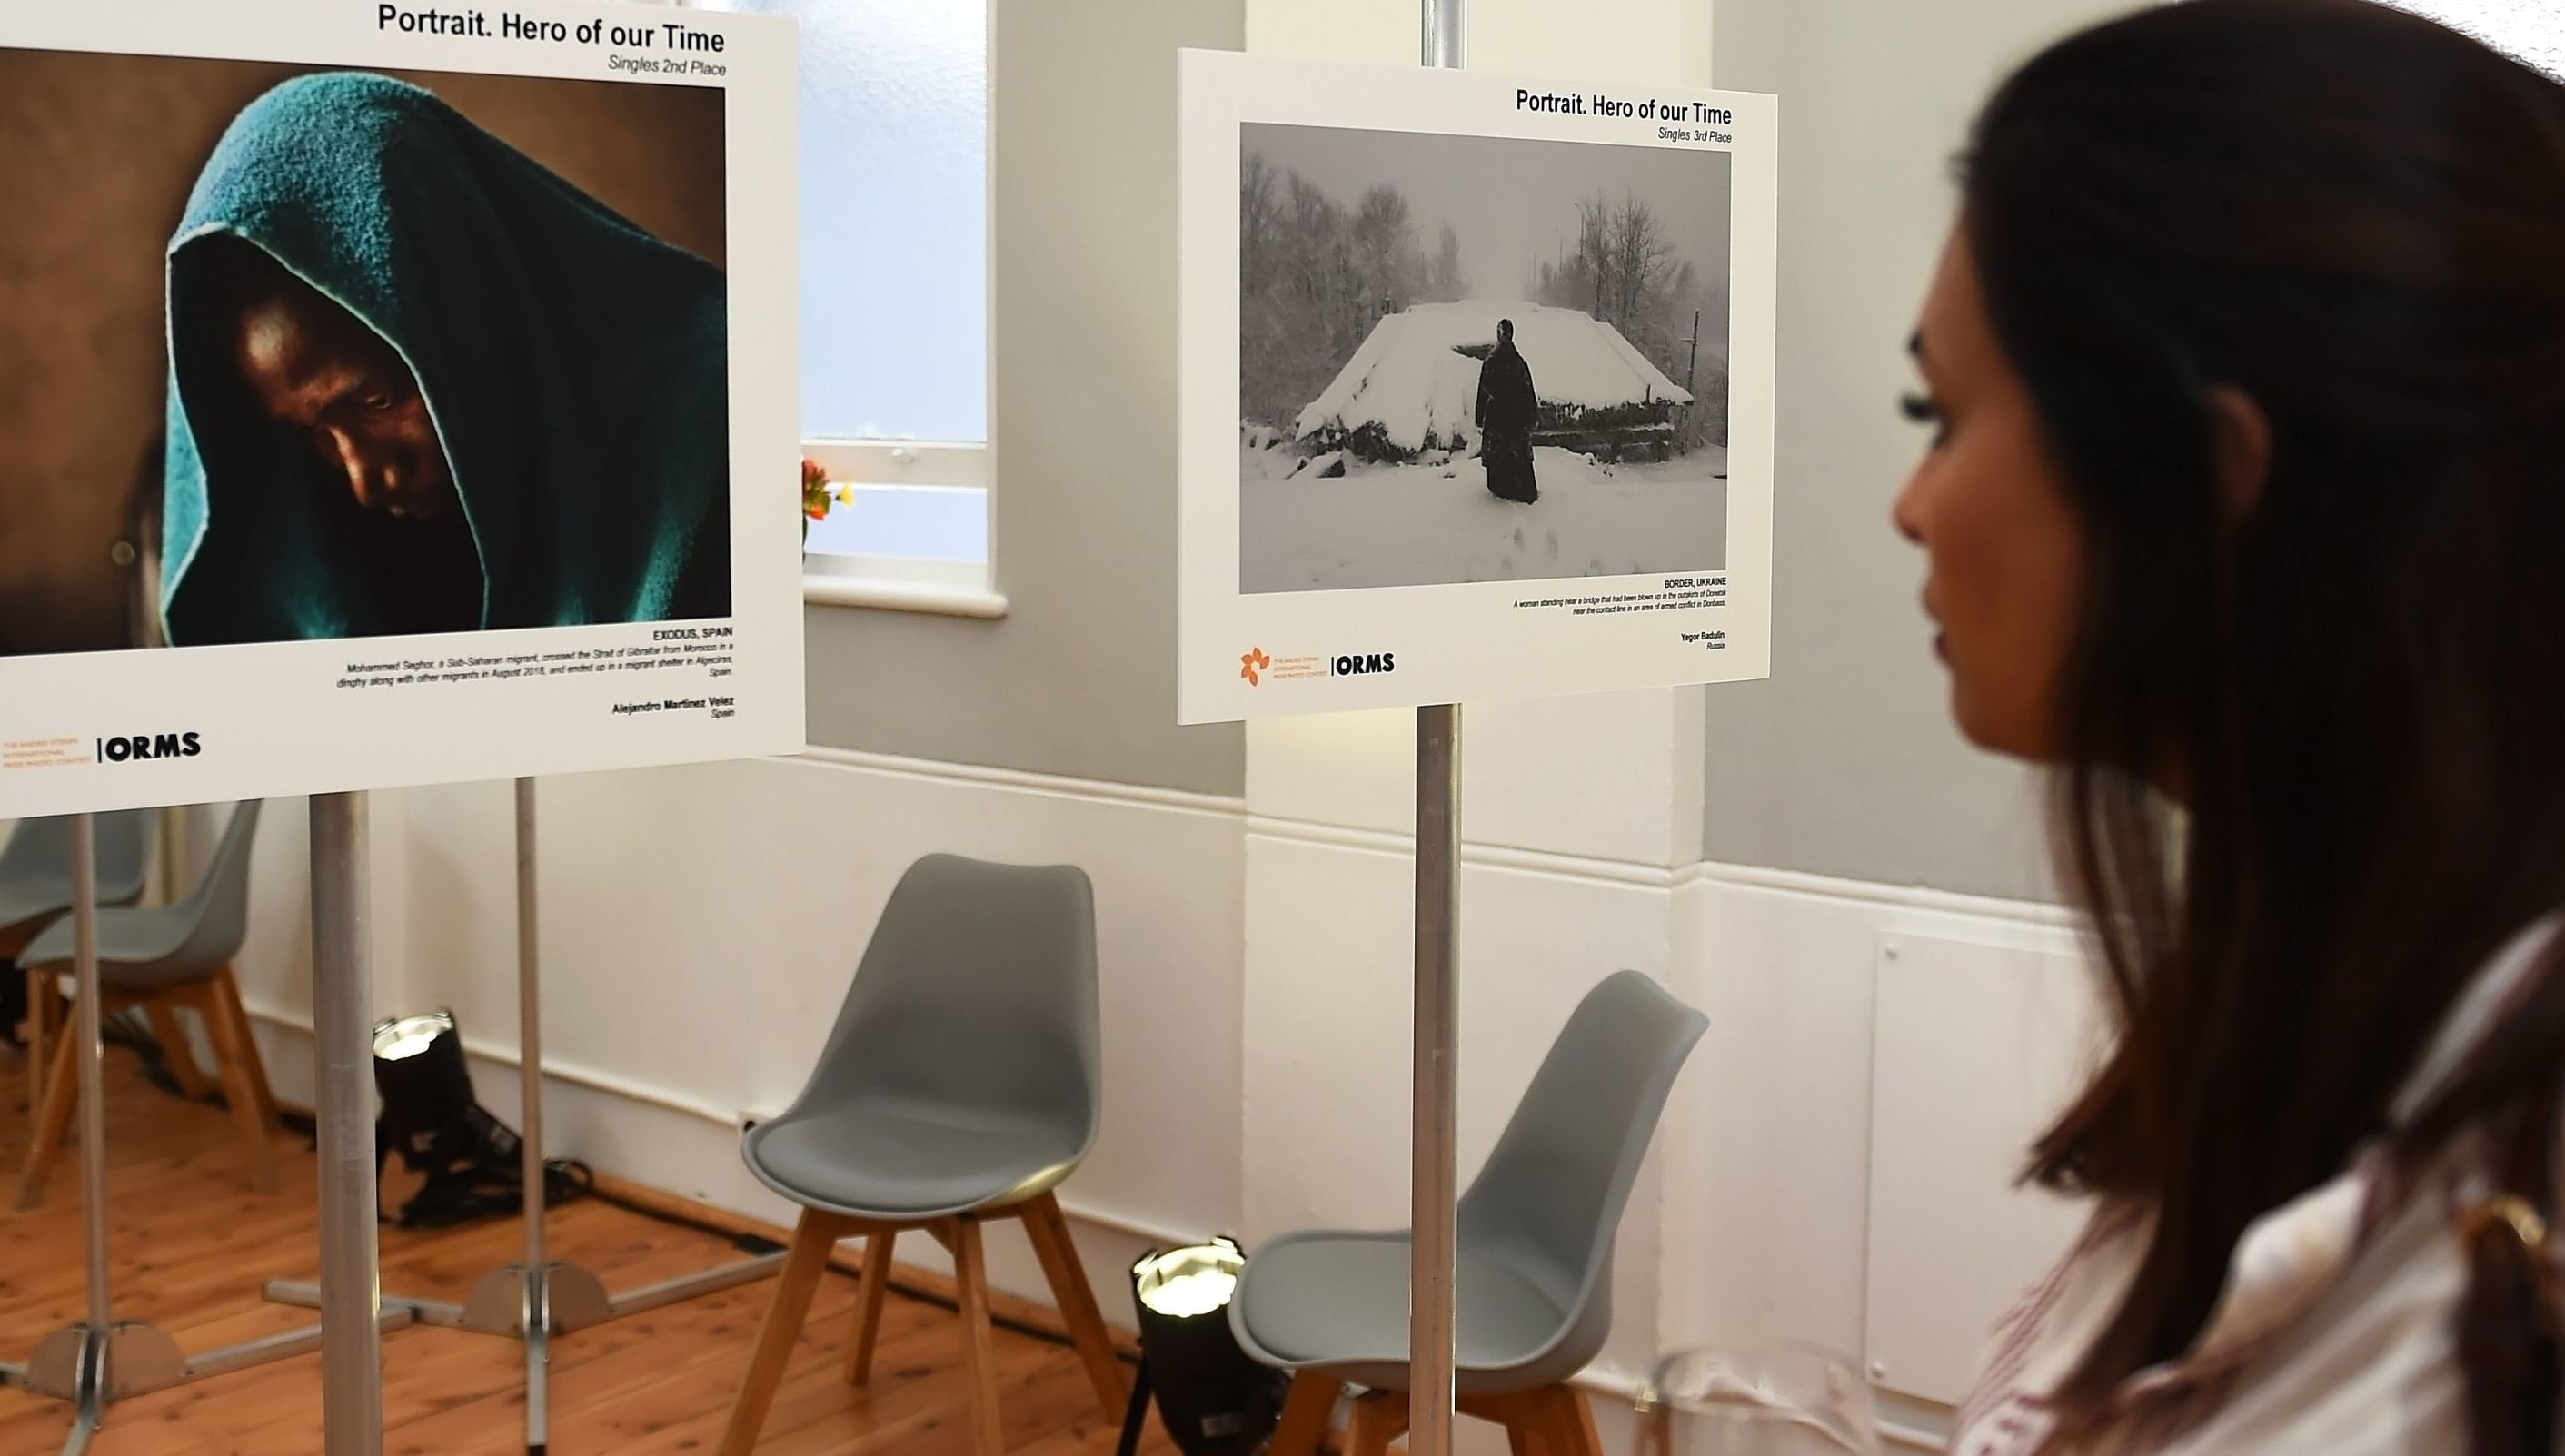 The exhibition of the Andrei Stenin Photo Contest winners in Cape Town